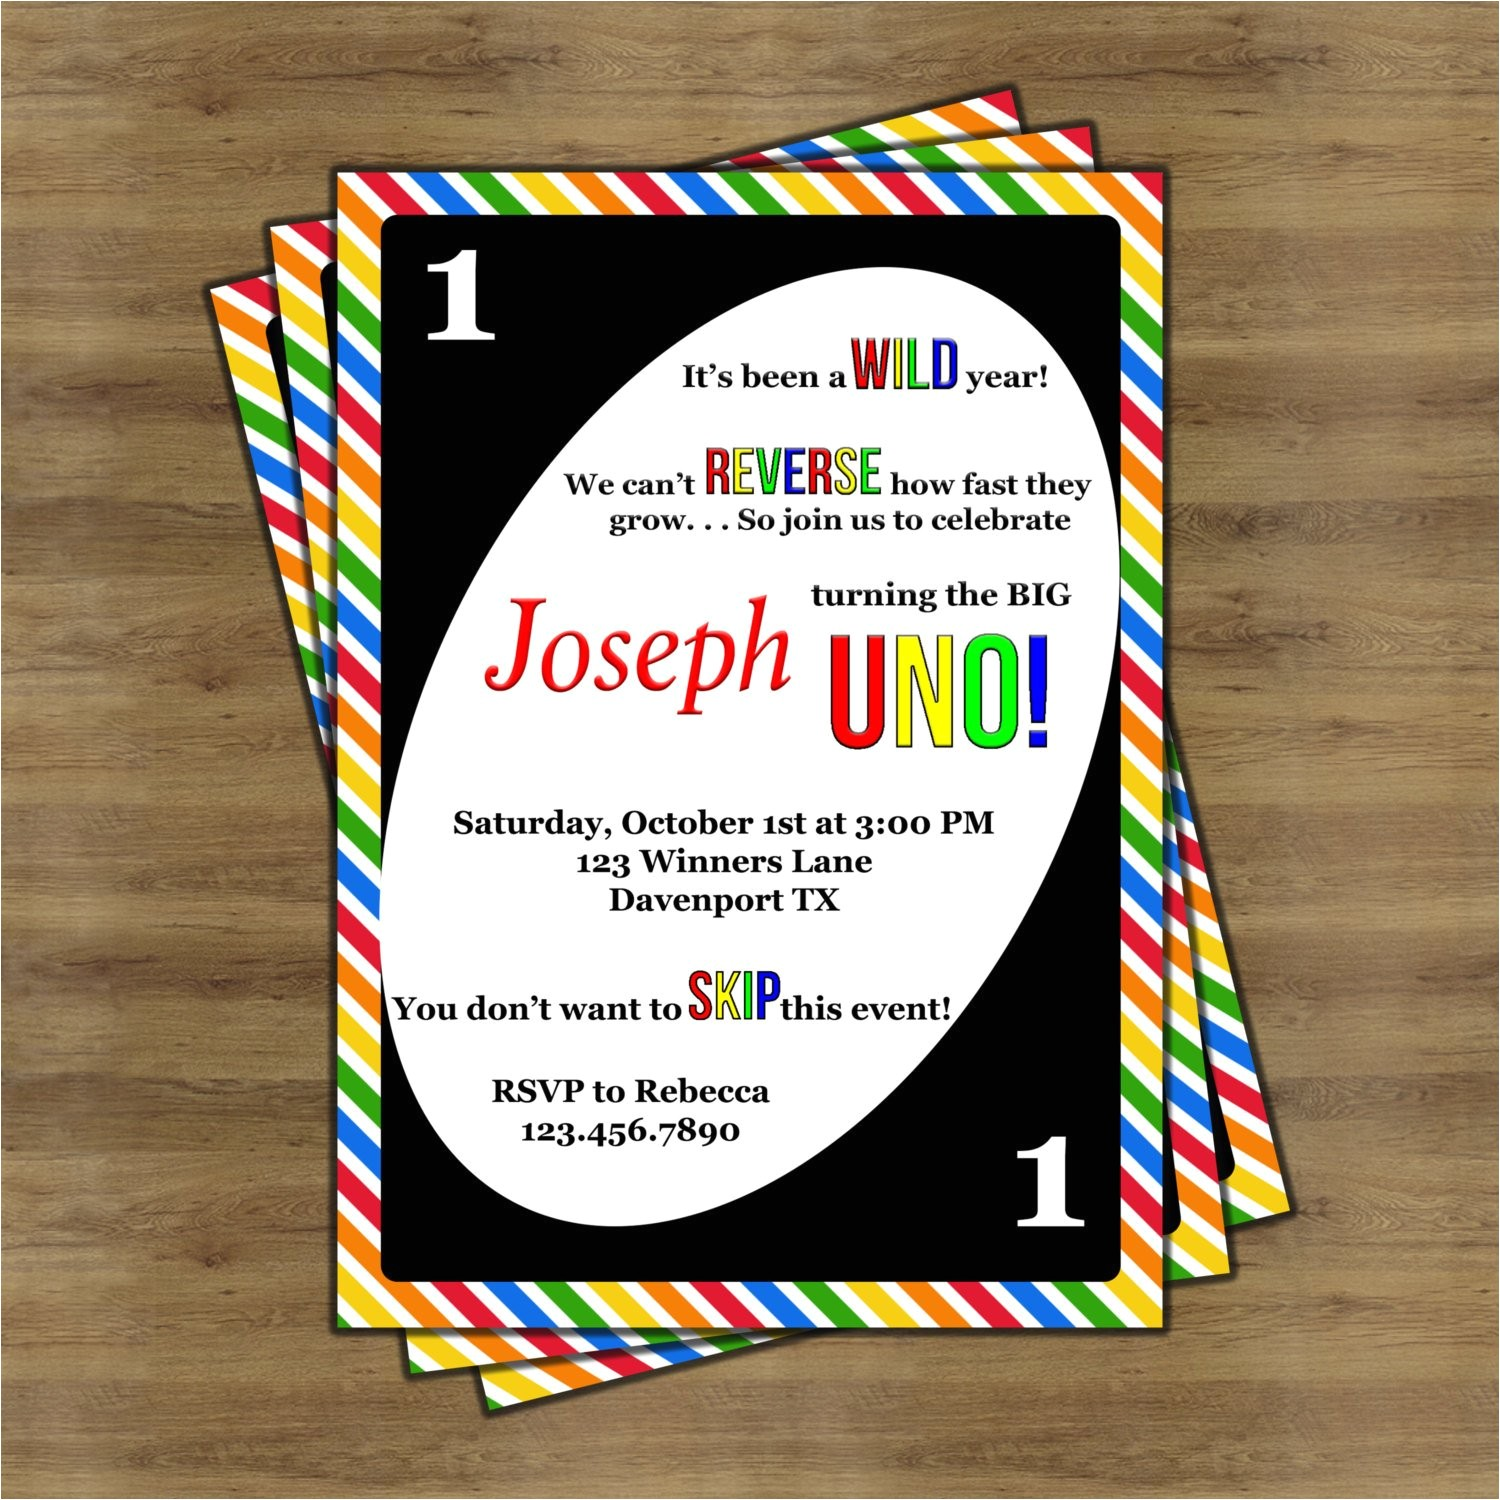 uno birthday invitations uno invitations